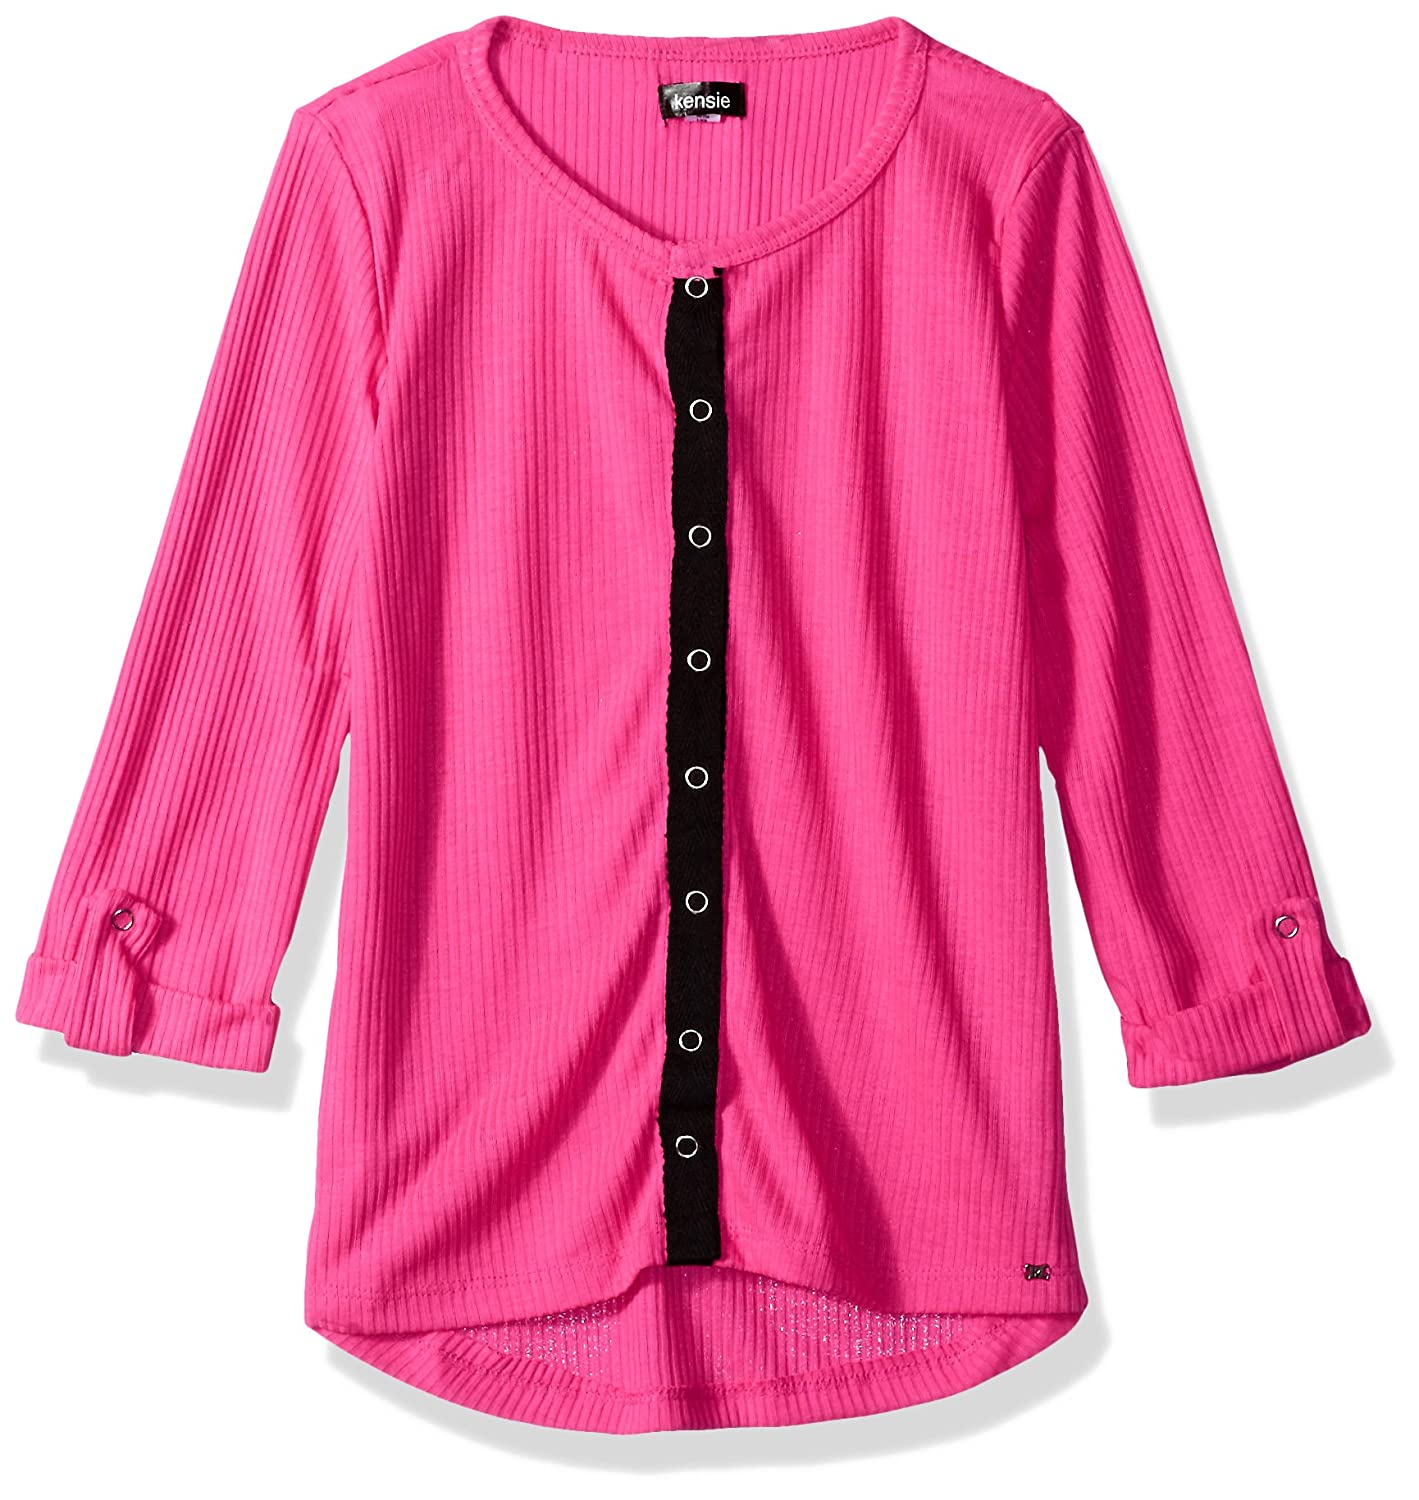 kensie Girls' Long Sleeve Fashion T-Shirt (More Styles Available)